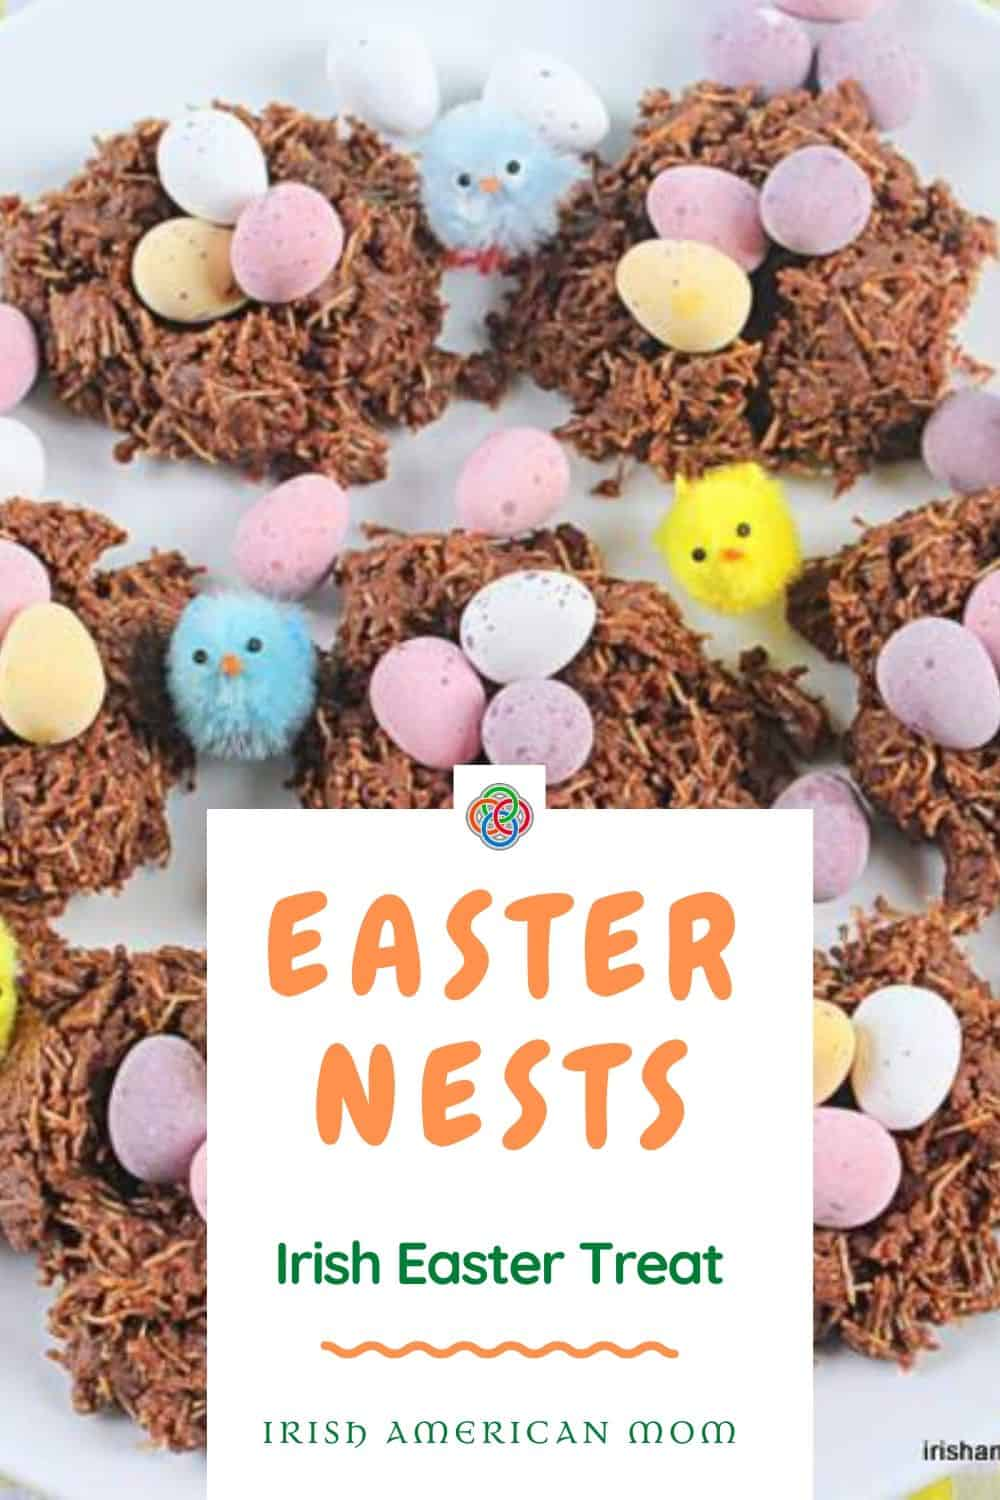 A graphic showing a collection of chocolate Easter nests filled with colorful chocolate mini eggs